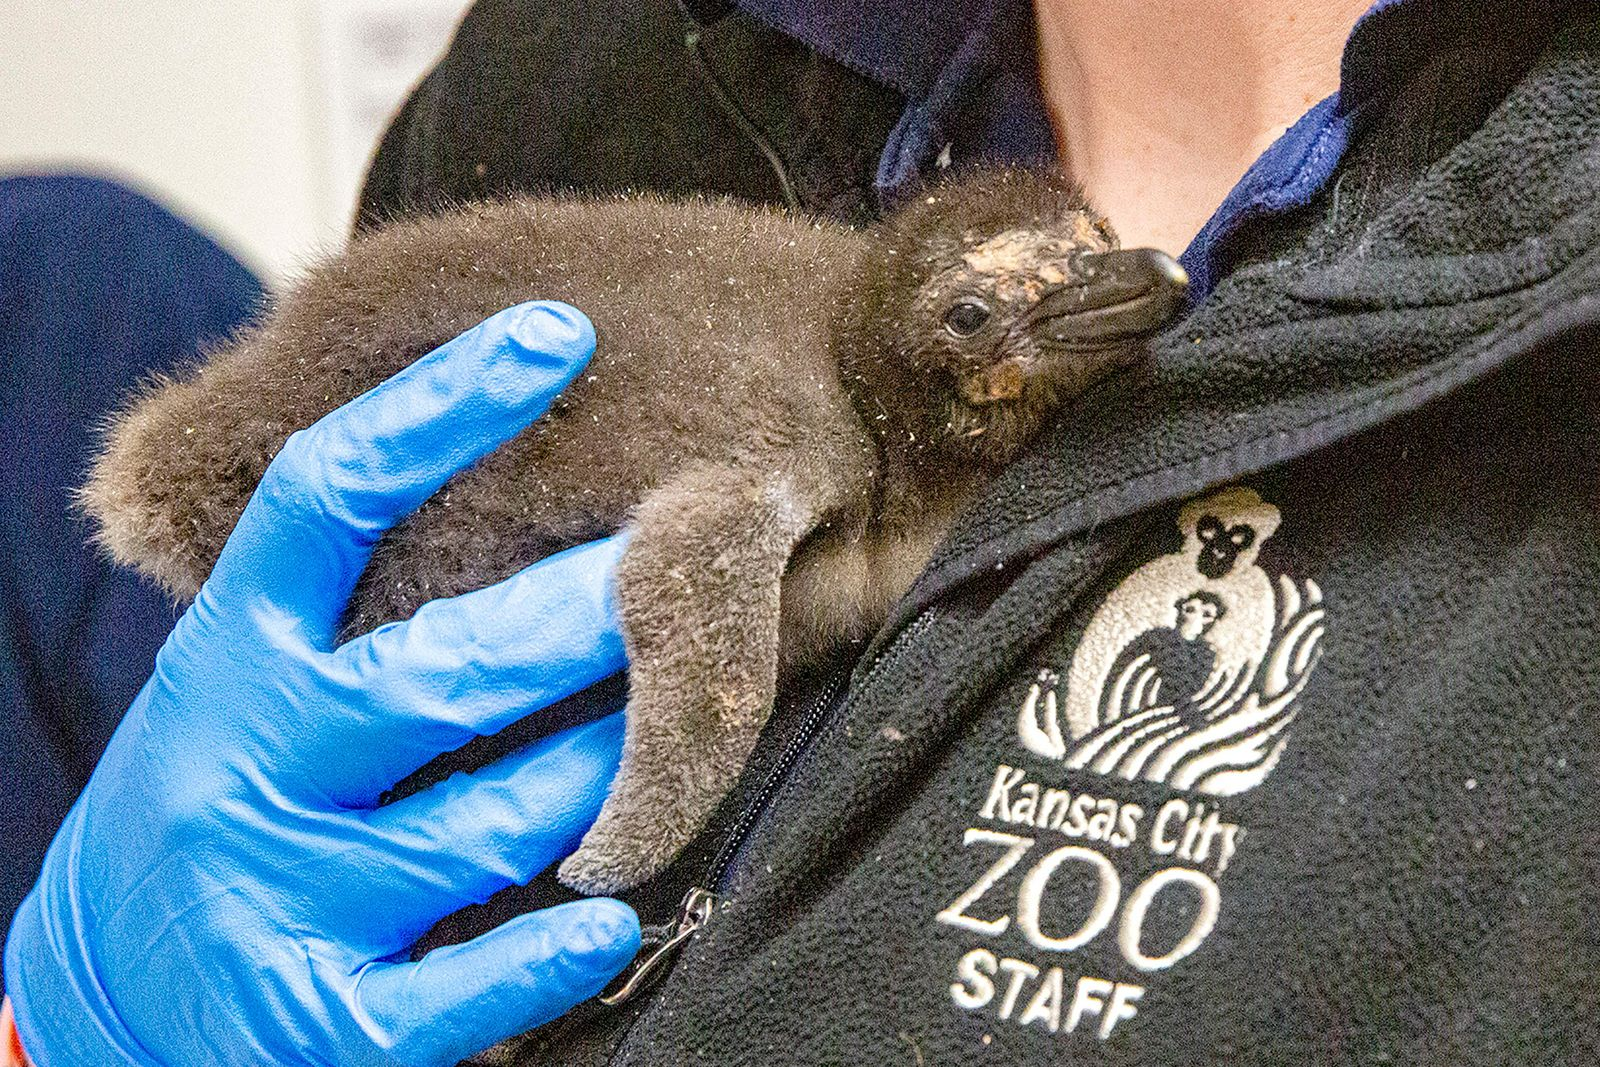 In this undated photo provided by the Kansas City Zoo, a Macaroni penguin chick is cared for just days after its birth at the zoo in Kansas City, Kansas. For the first time in the zoo's 110-year history, the zoo is home to Macaroni penguins, from eggs provided by SeaWorld San Diego, that hatched eight fluffy chicks in incubators. (Kansas City Zoo via AP)